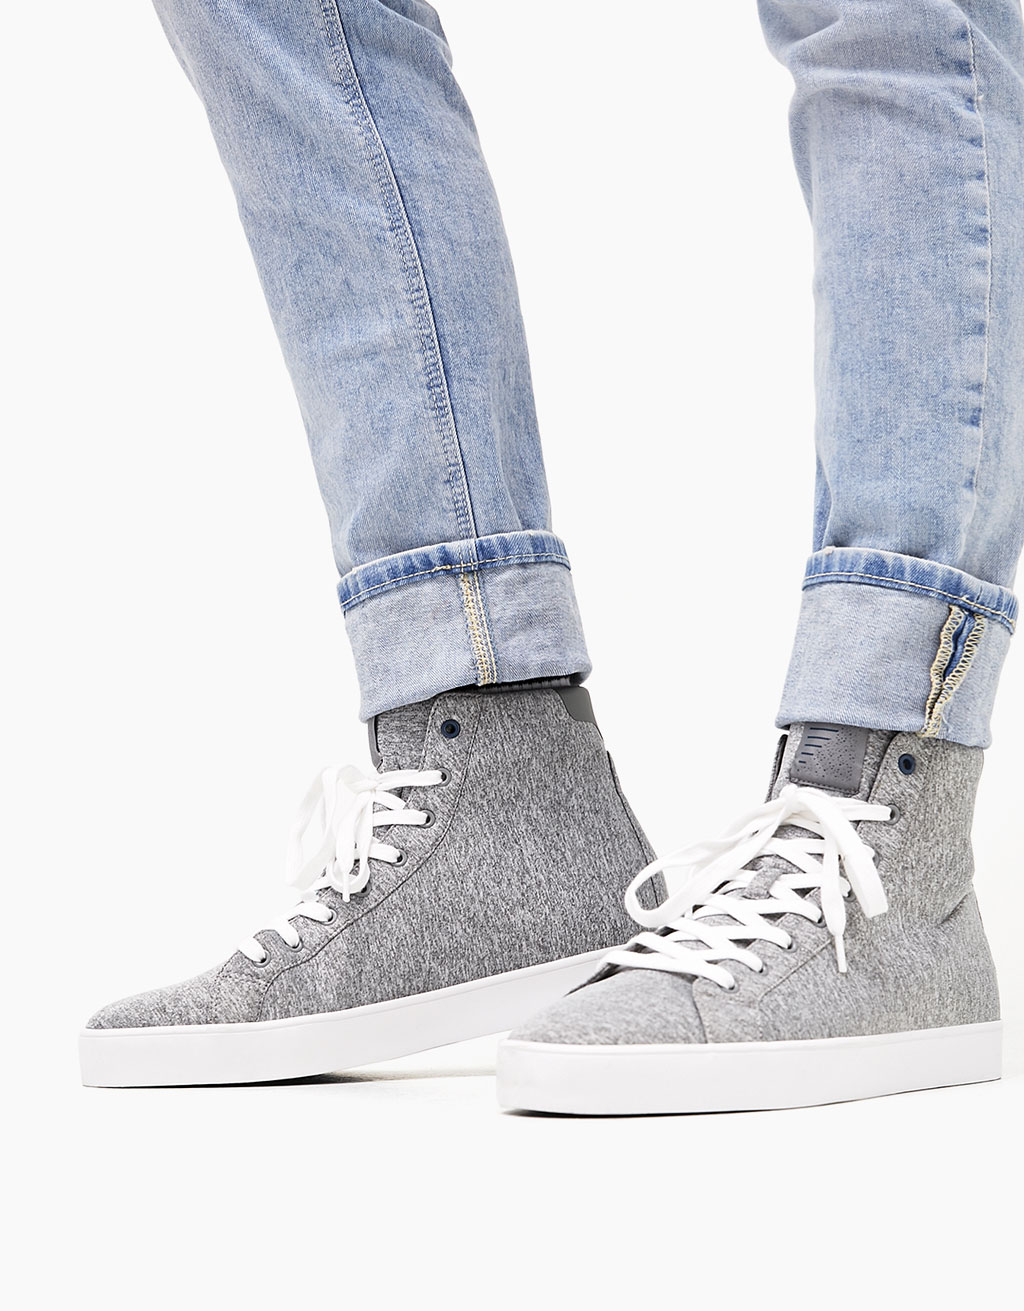 Men's neoprene lace-up high top sneakers